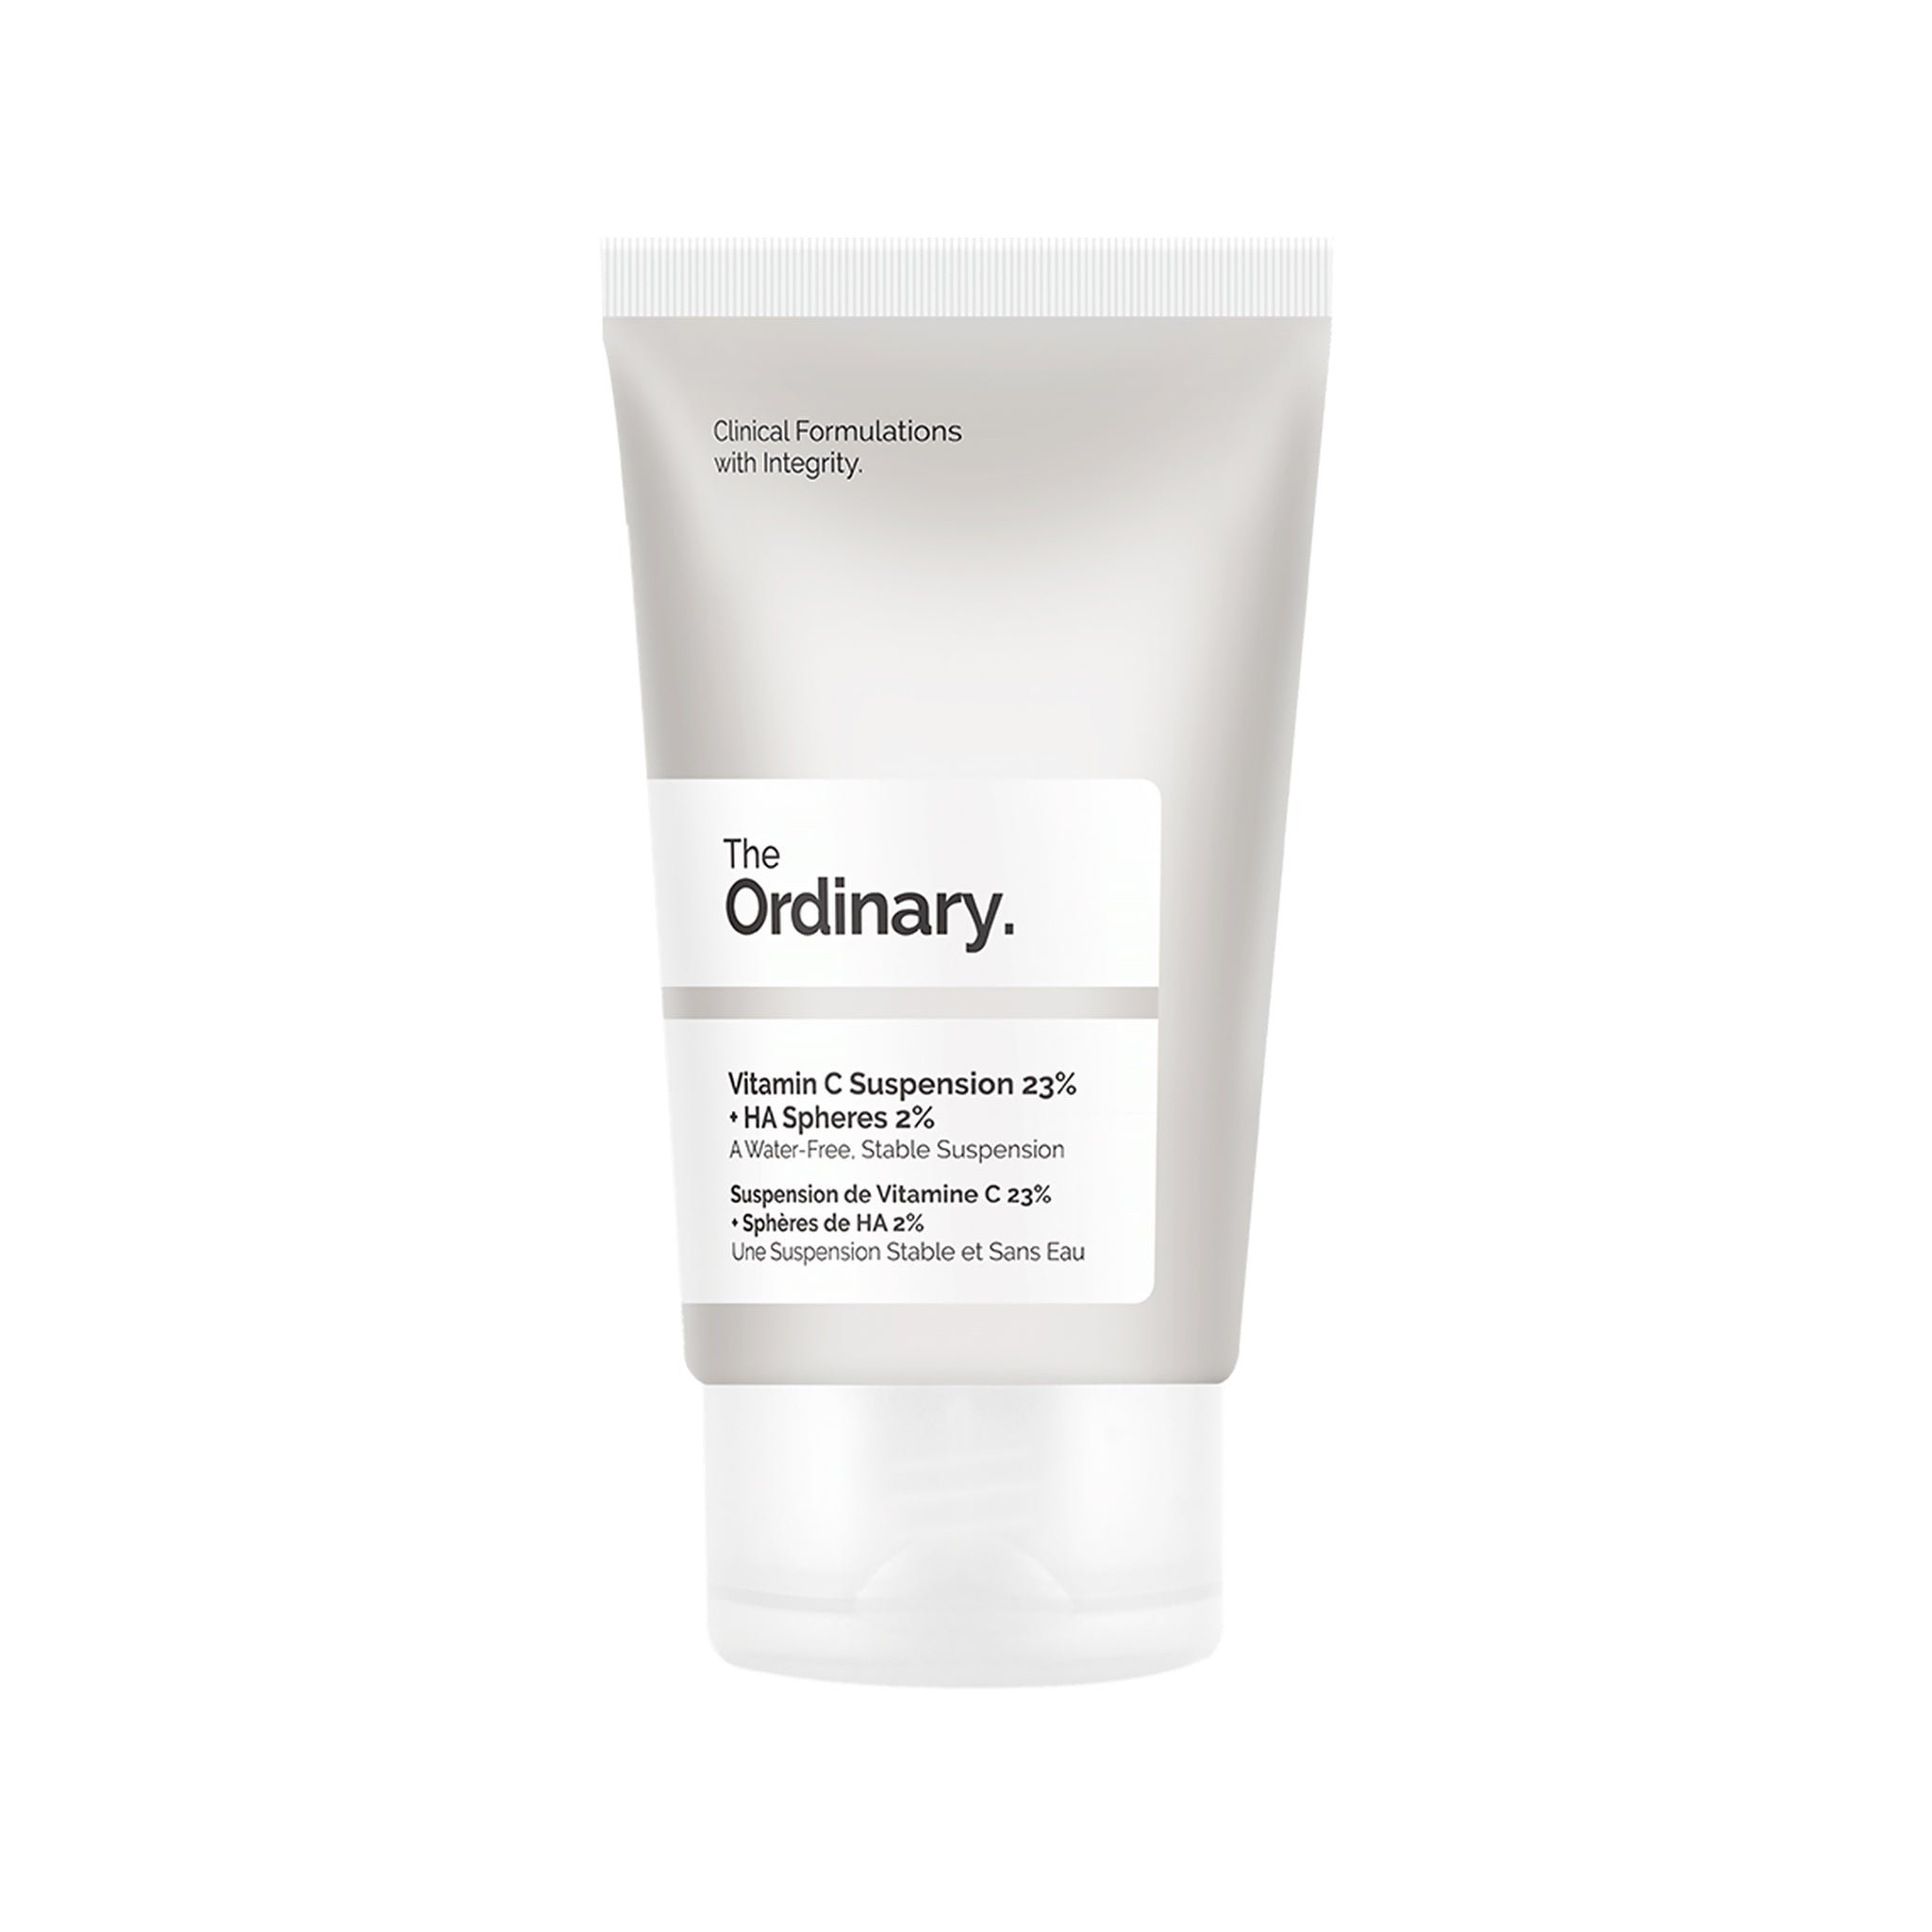 The Ordinary Vitamin C Suspension 23% + HA Spheres 2%